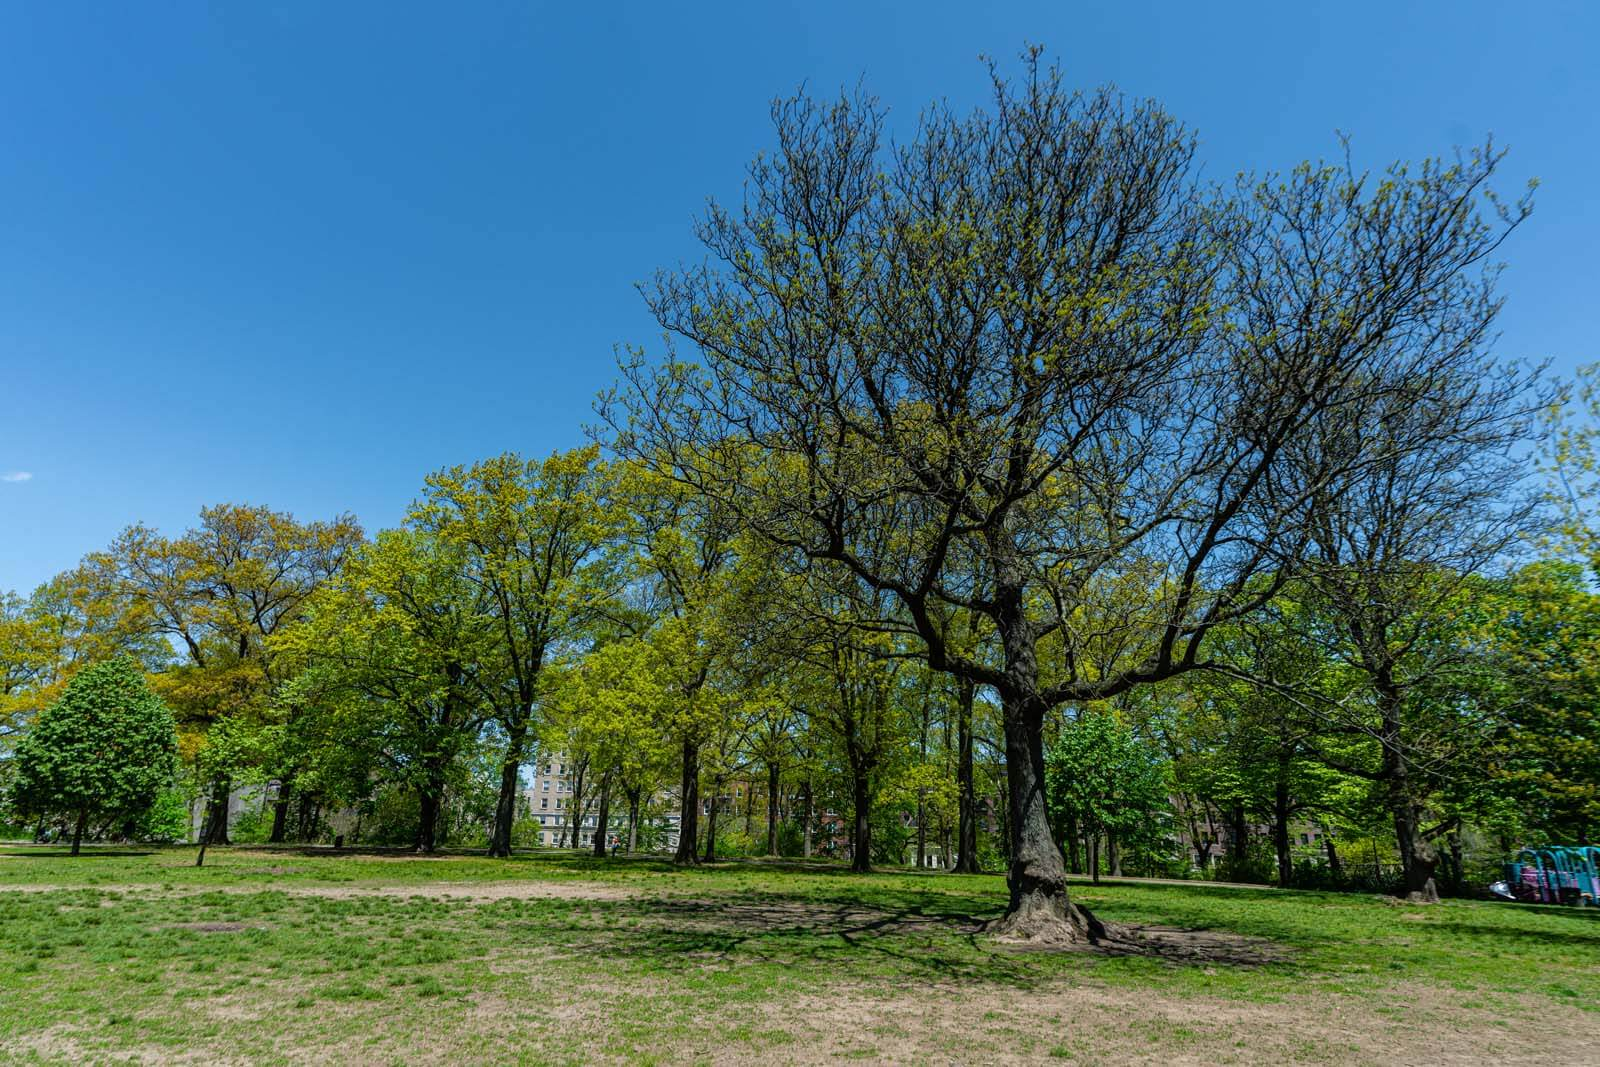 Mount Prospect Park in Brooklyn